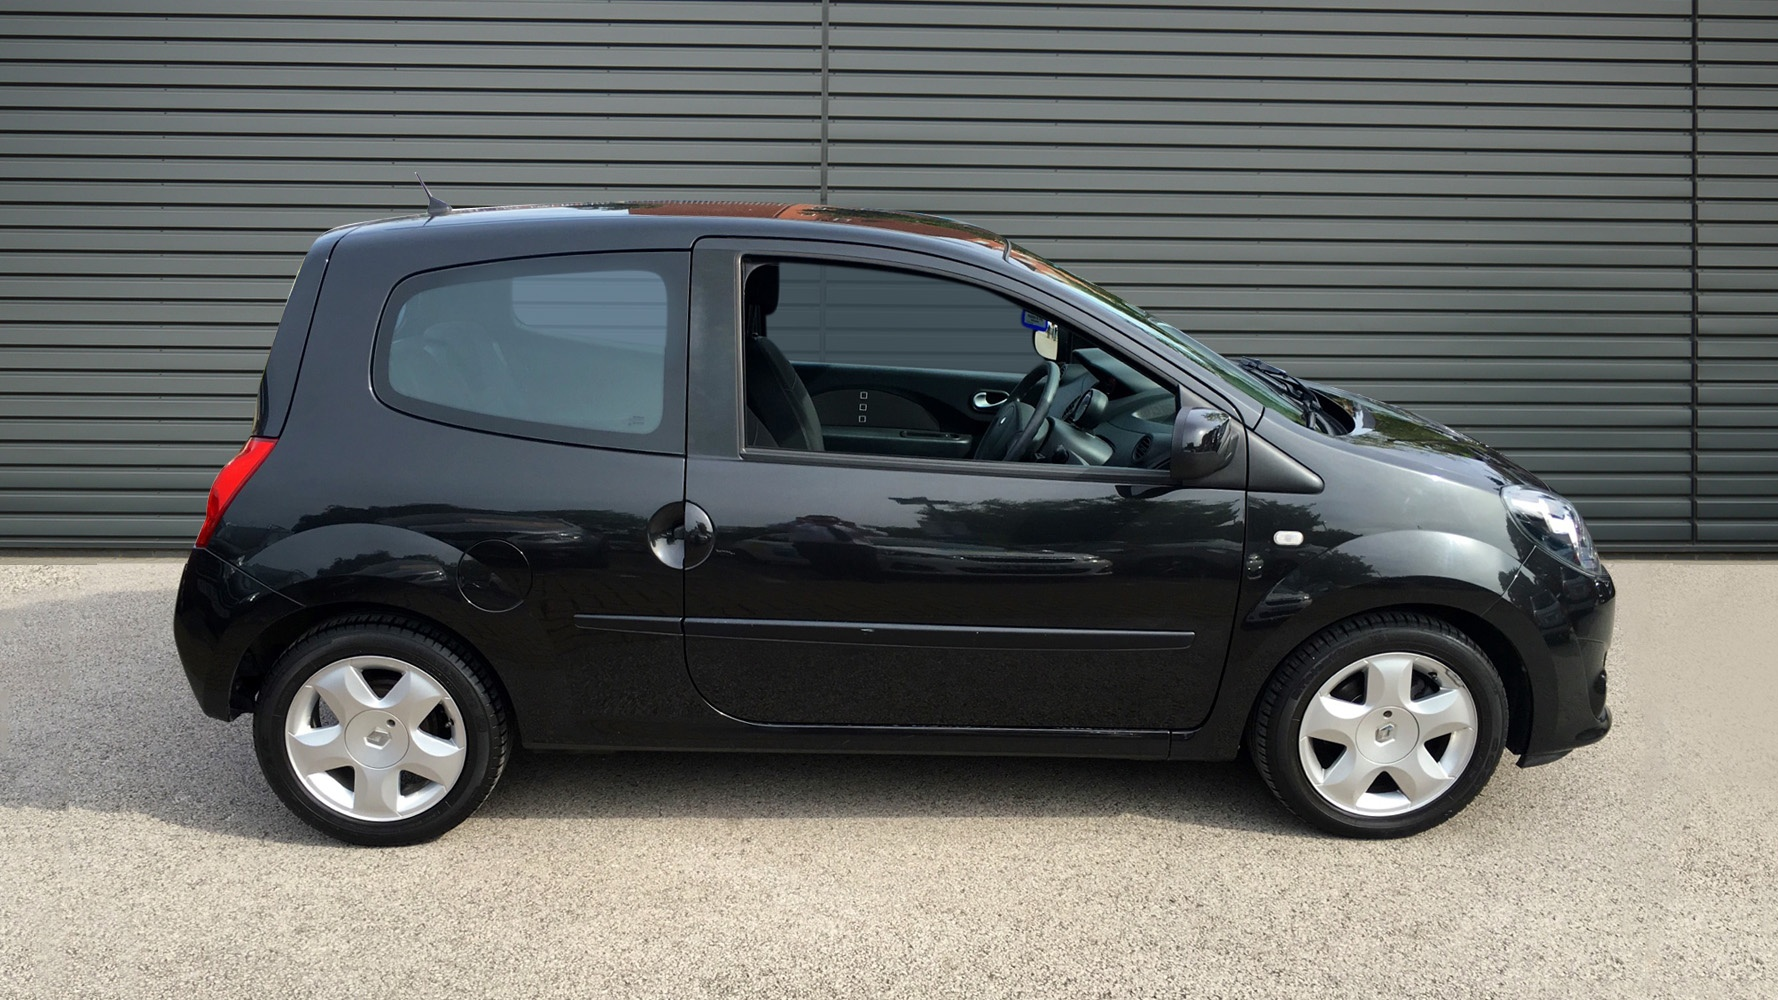 used renault twingo hatchback 1 2 16v dynamique 3dr 2011 nx11zda. Black Bedroom Furniture Sets. Home Design Ideas